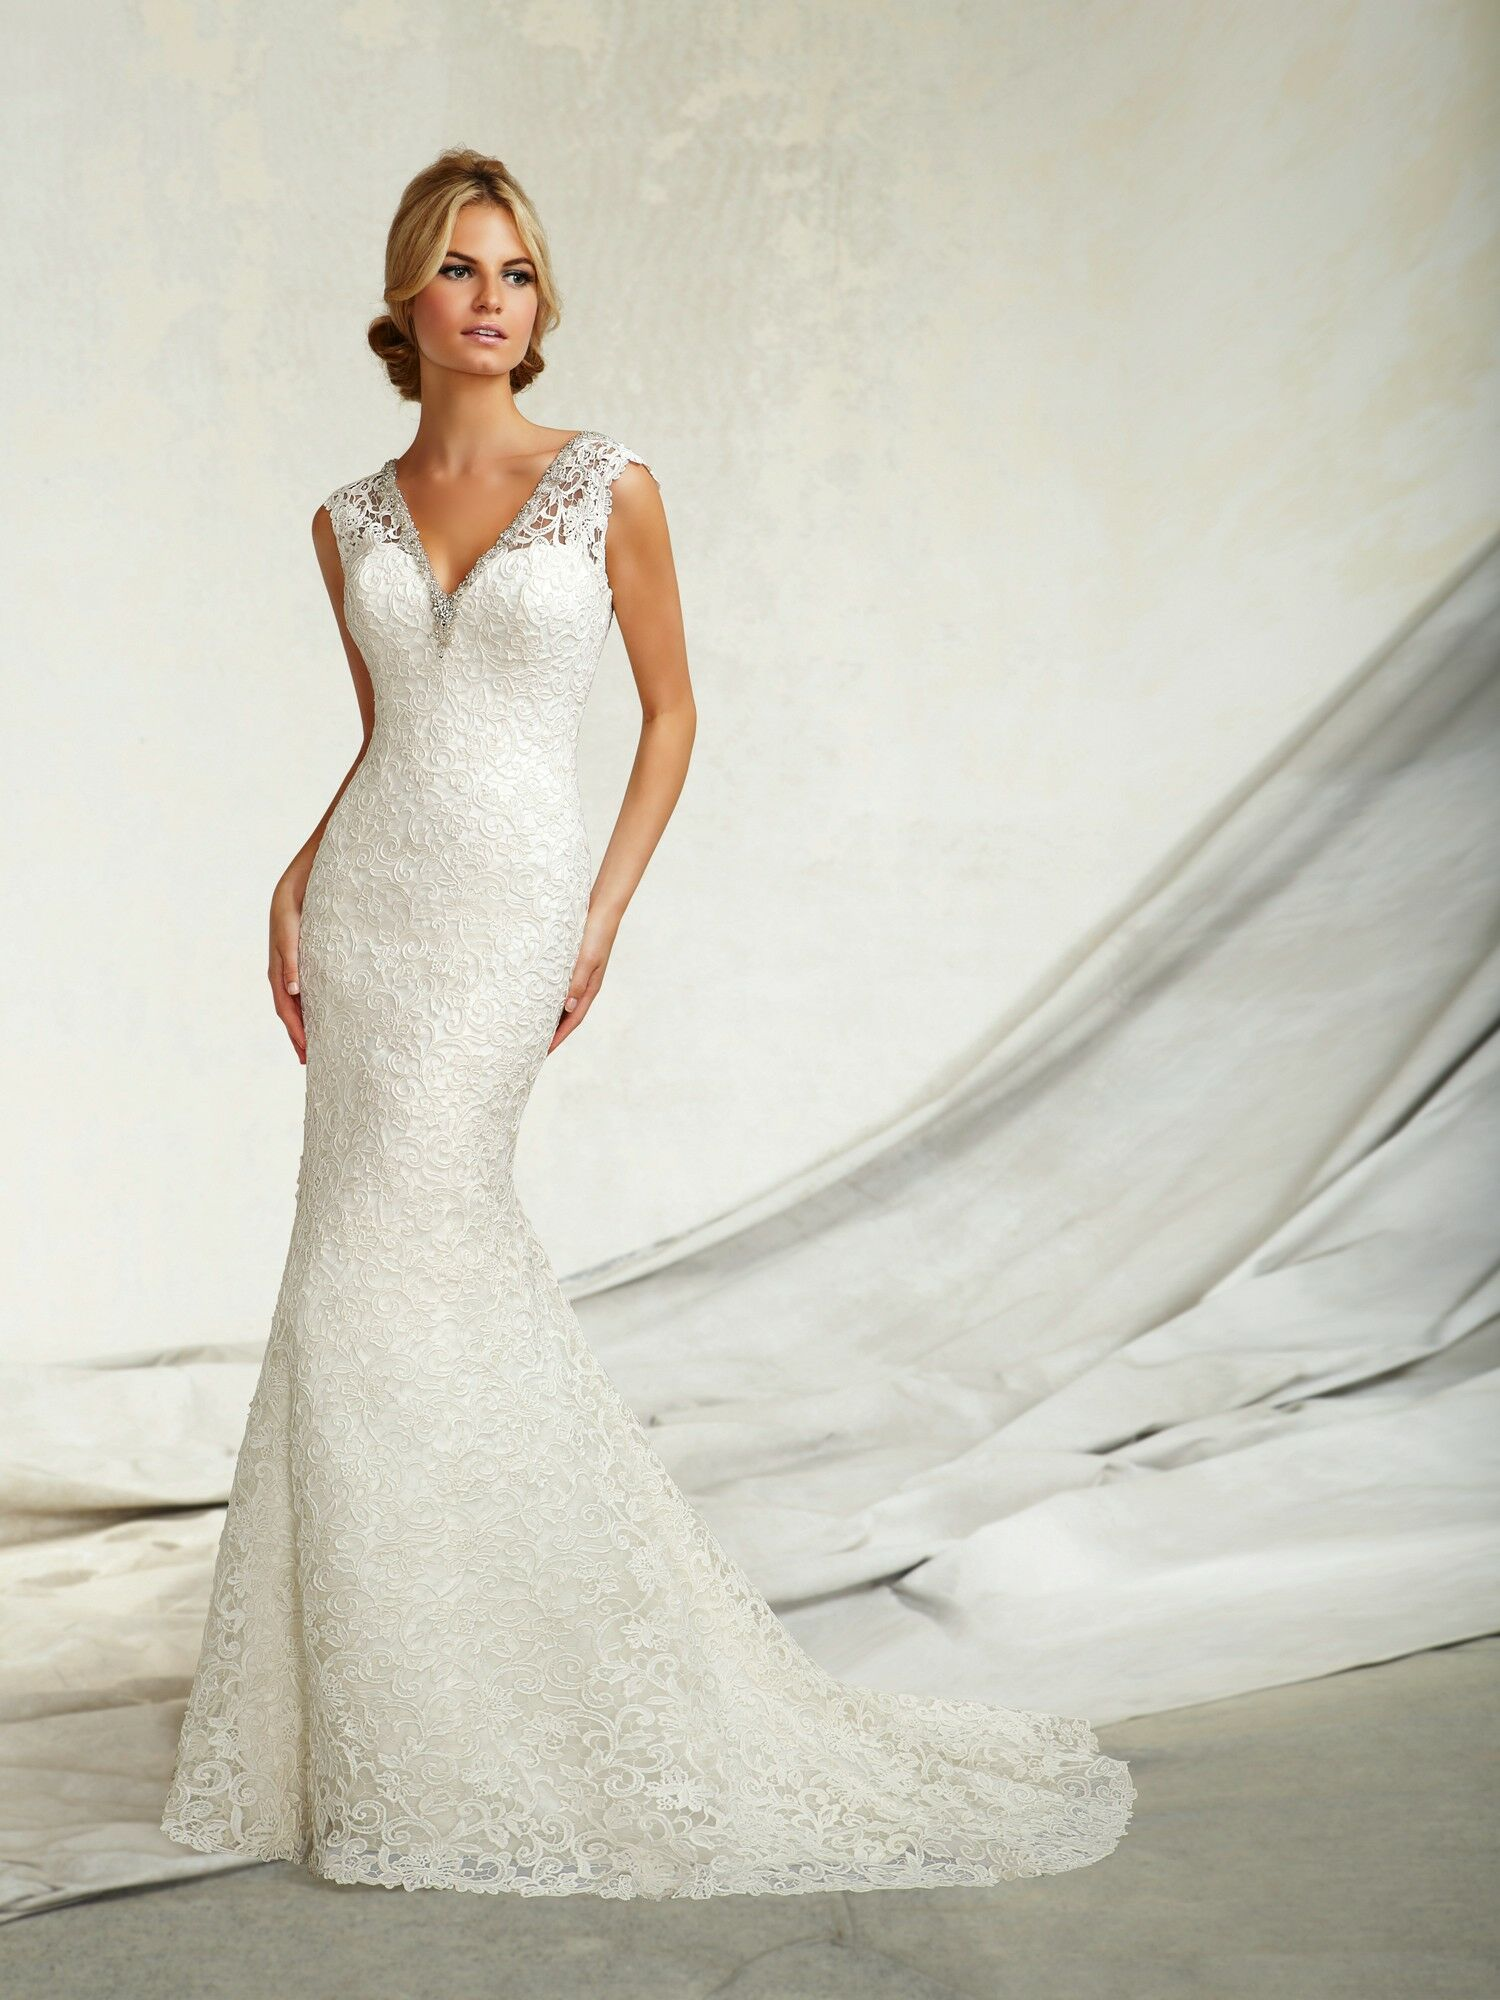 Fine Sophies Gown Photo - Images for wedding gown ideas - cedim.us